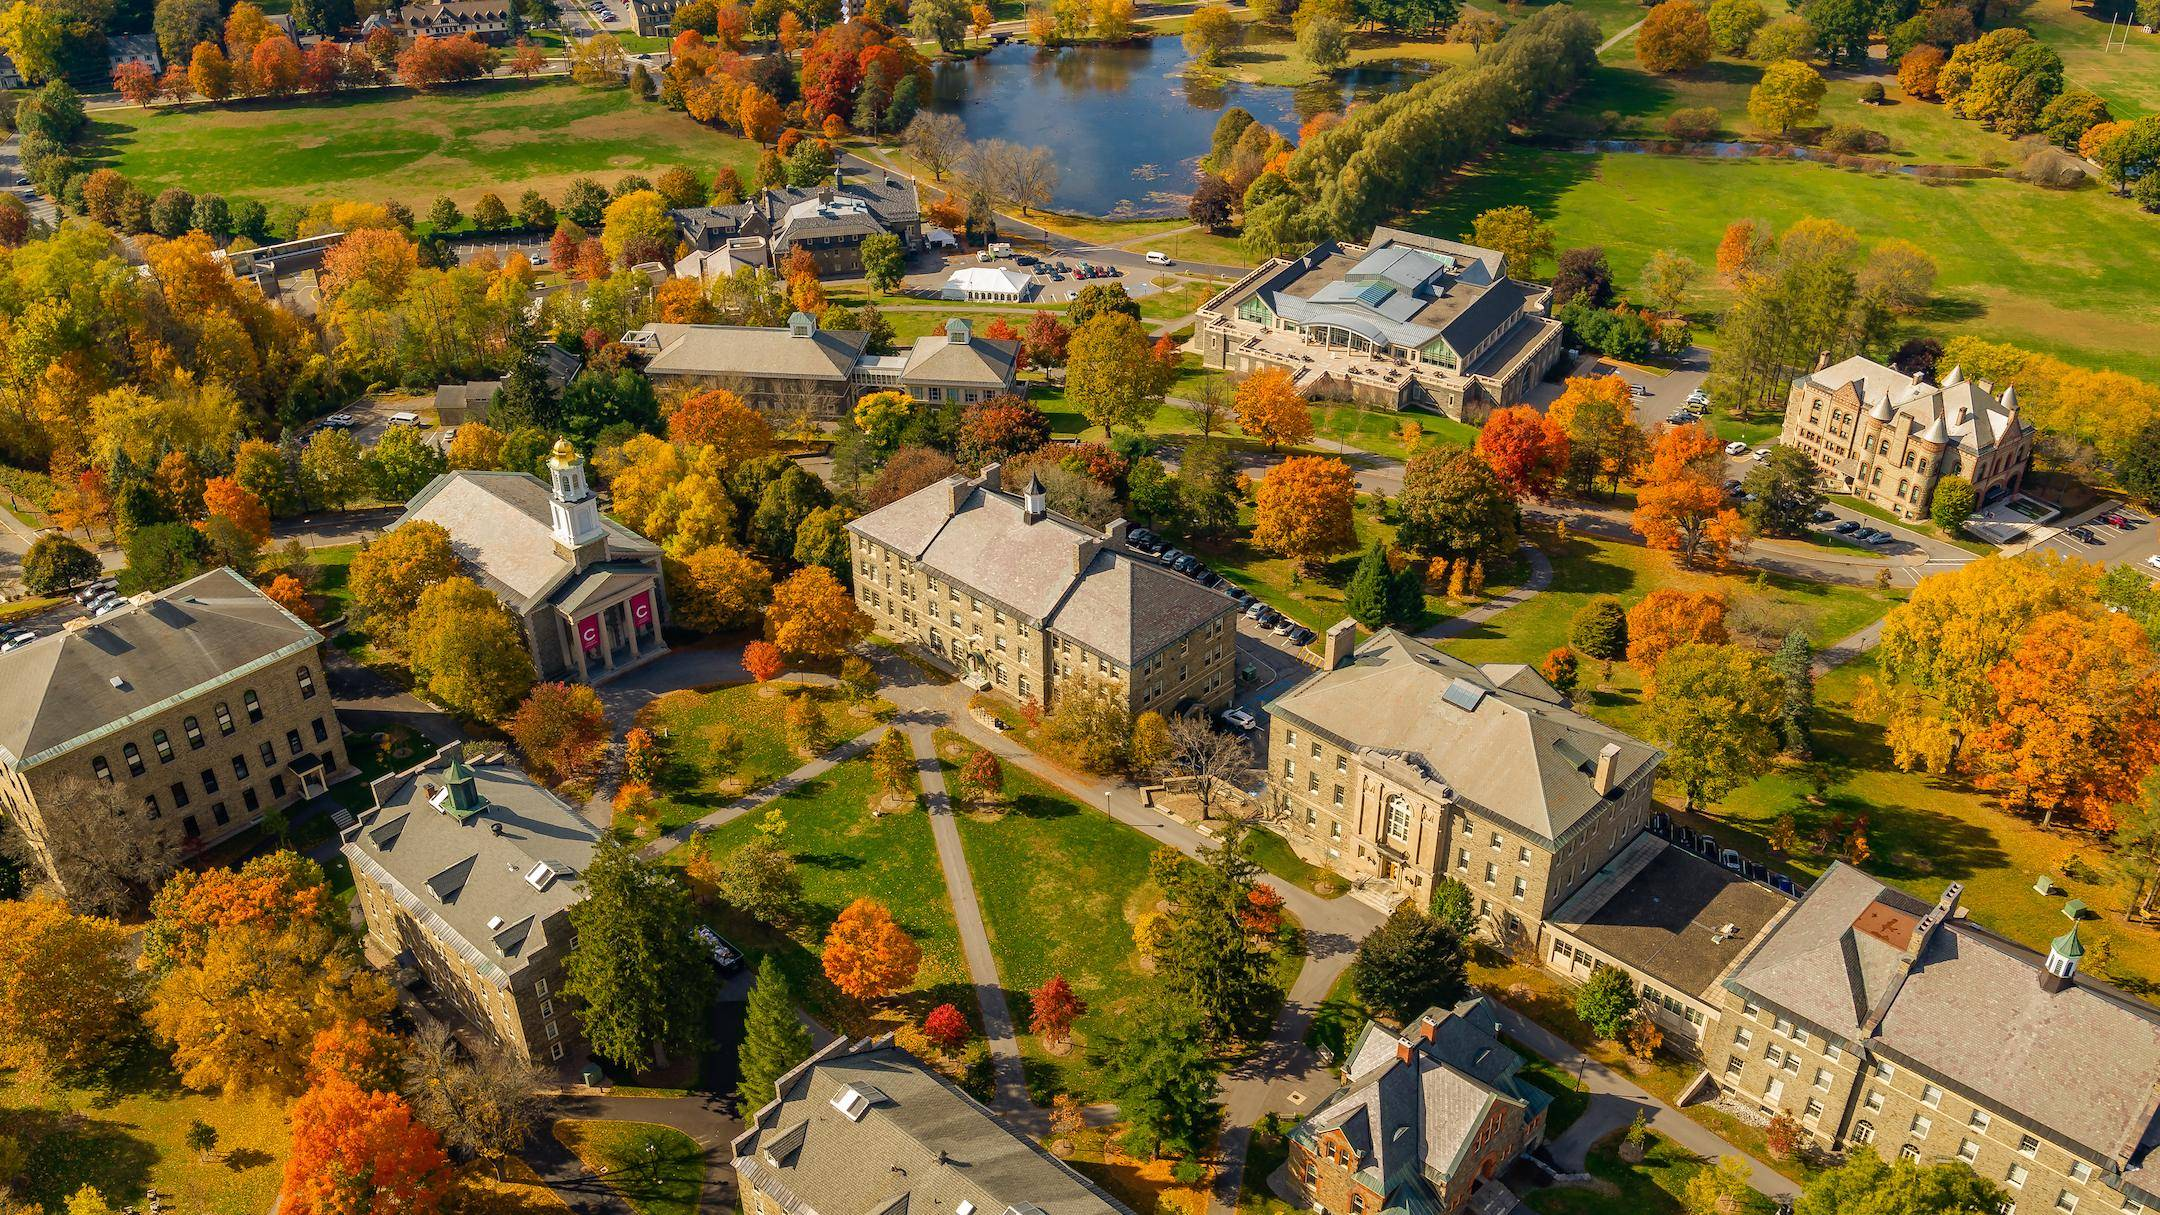 Aerial view of the academic quad